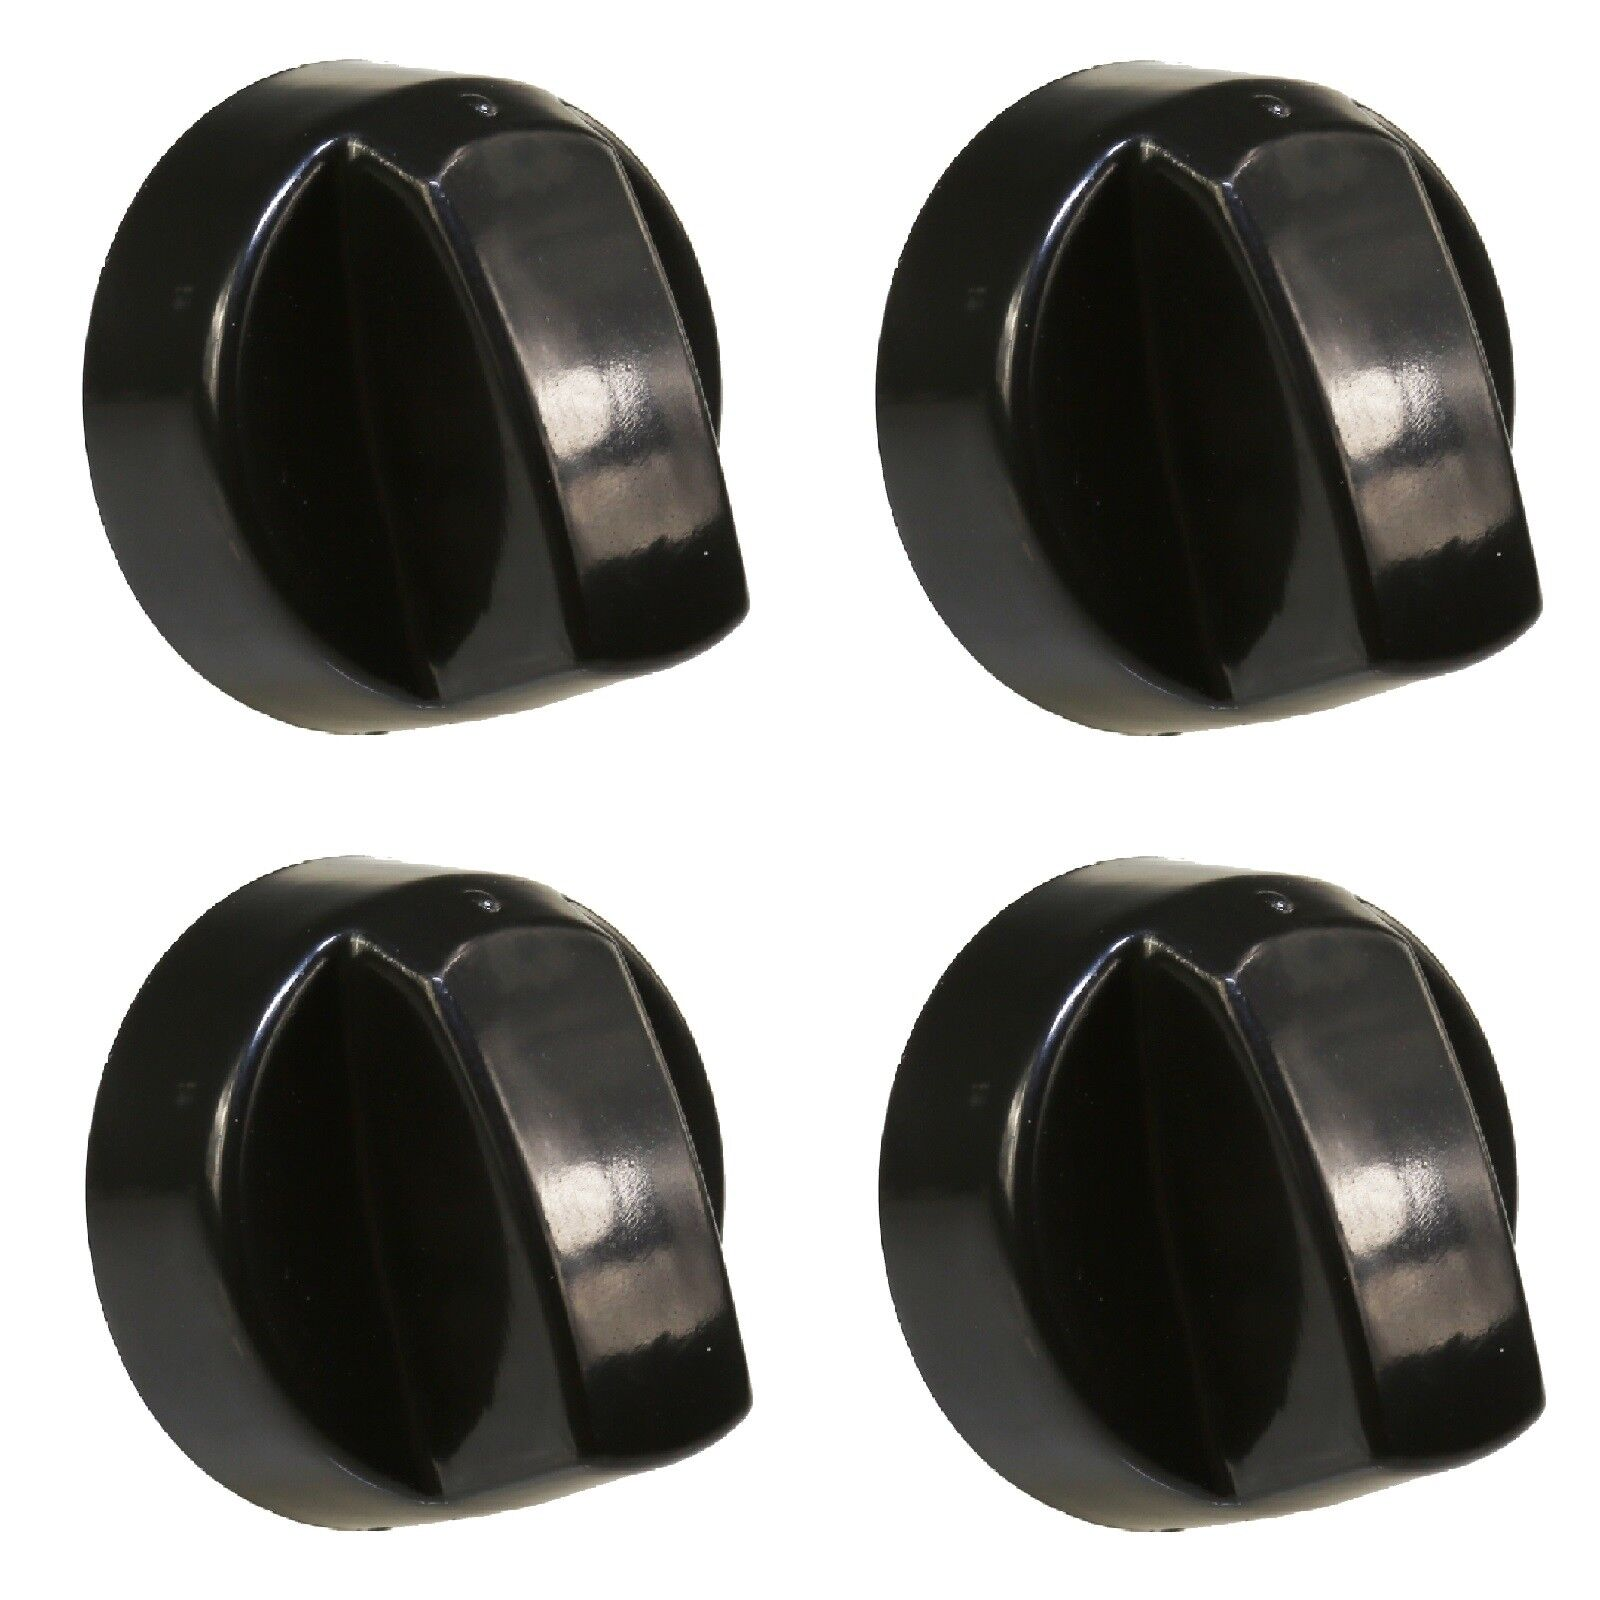 4 x HOTPOINT Black Oven Cooker Hob Flame Burner Hotplate Control Switch Knobs